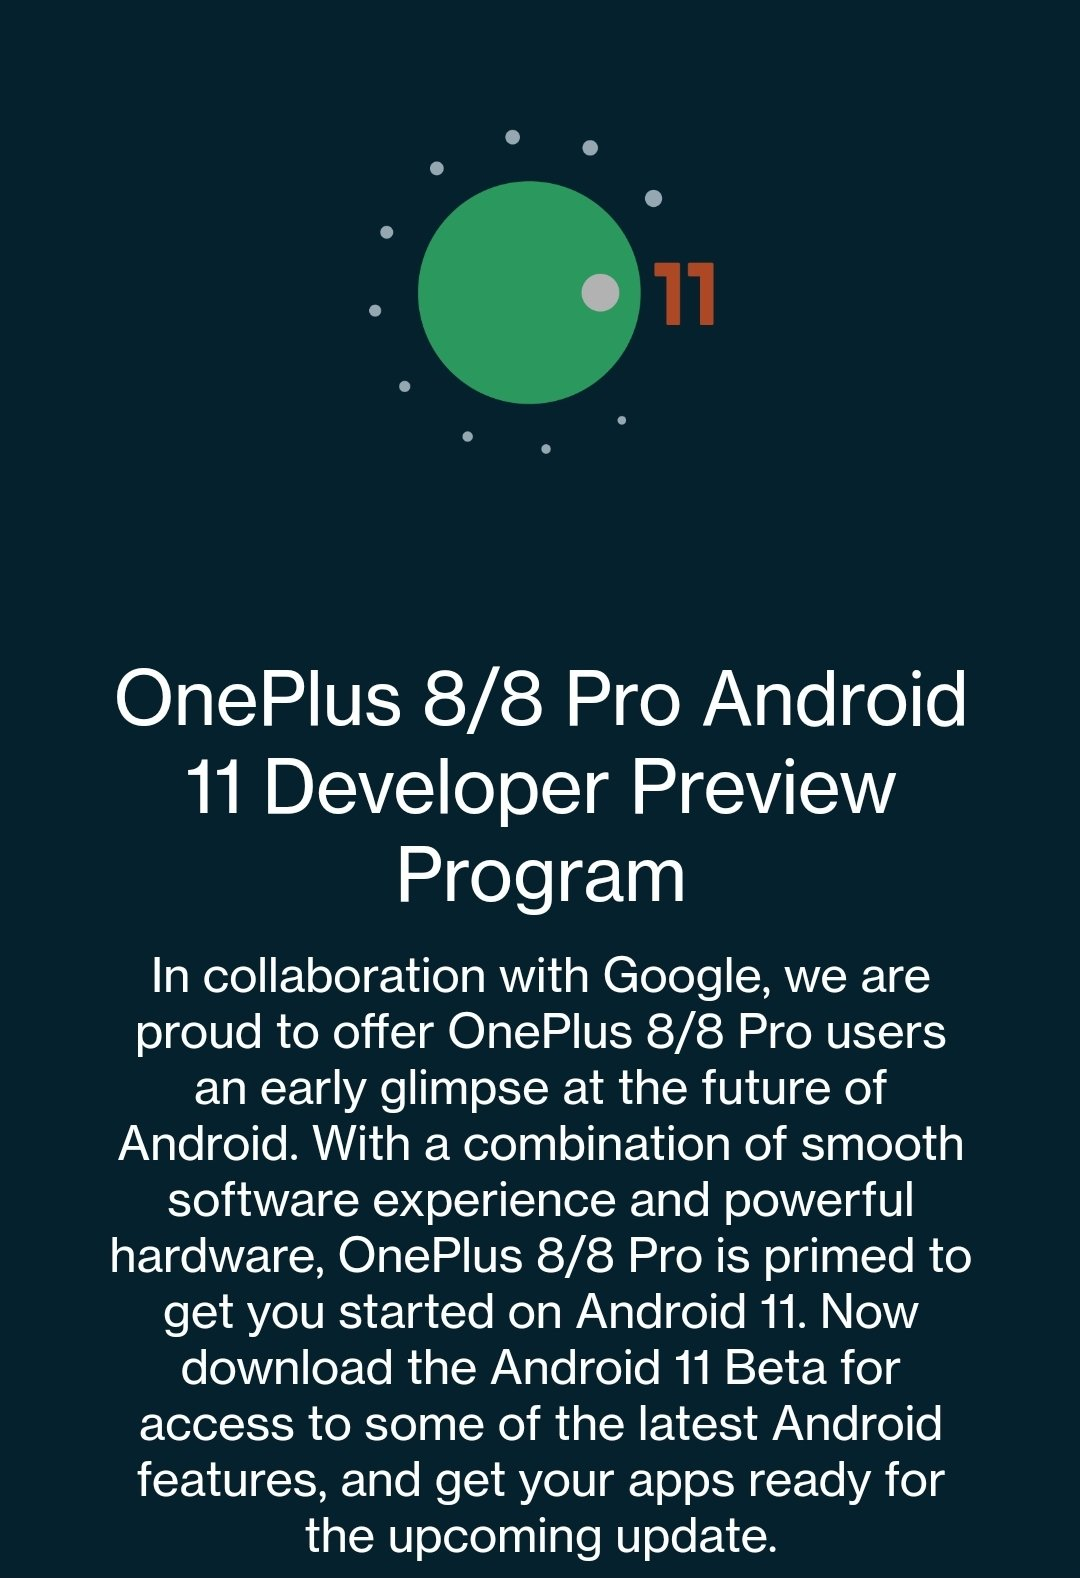 OnePlus 8 Series Android 11 Beta